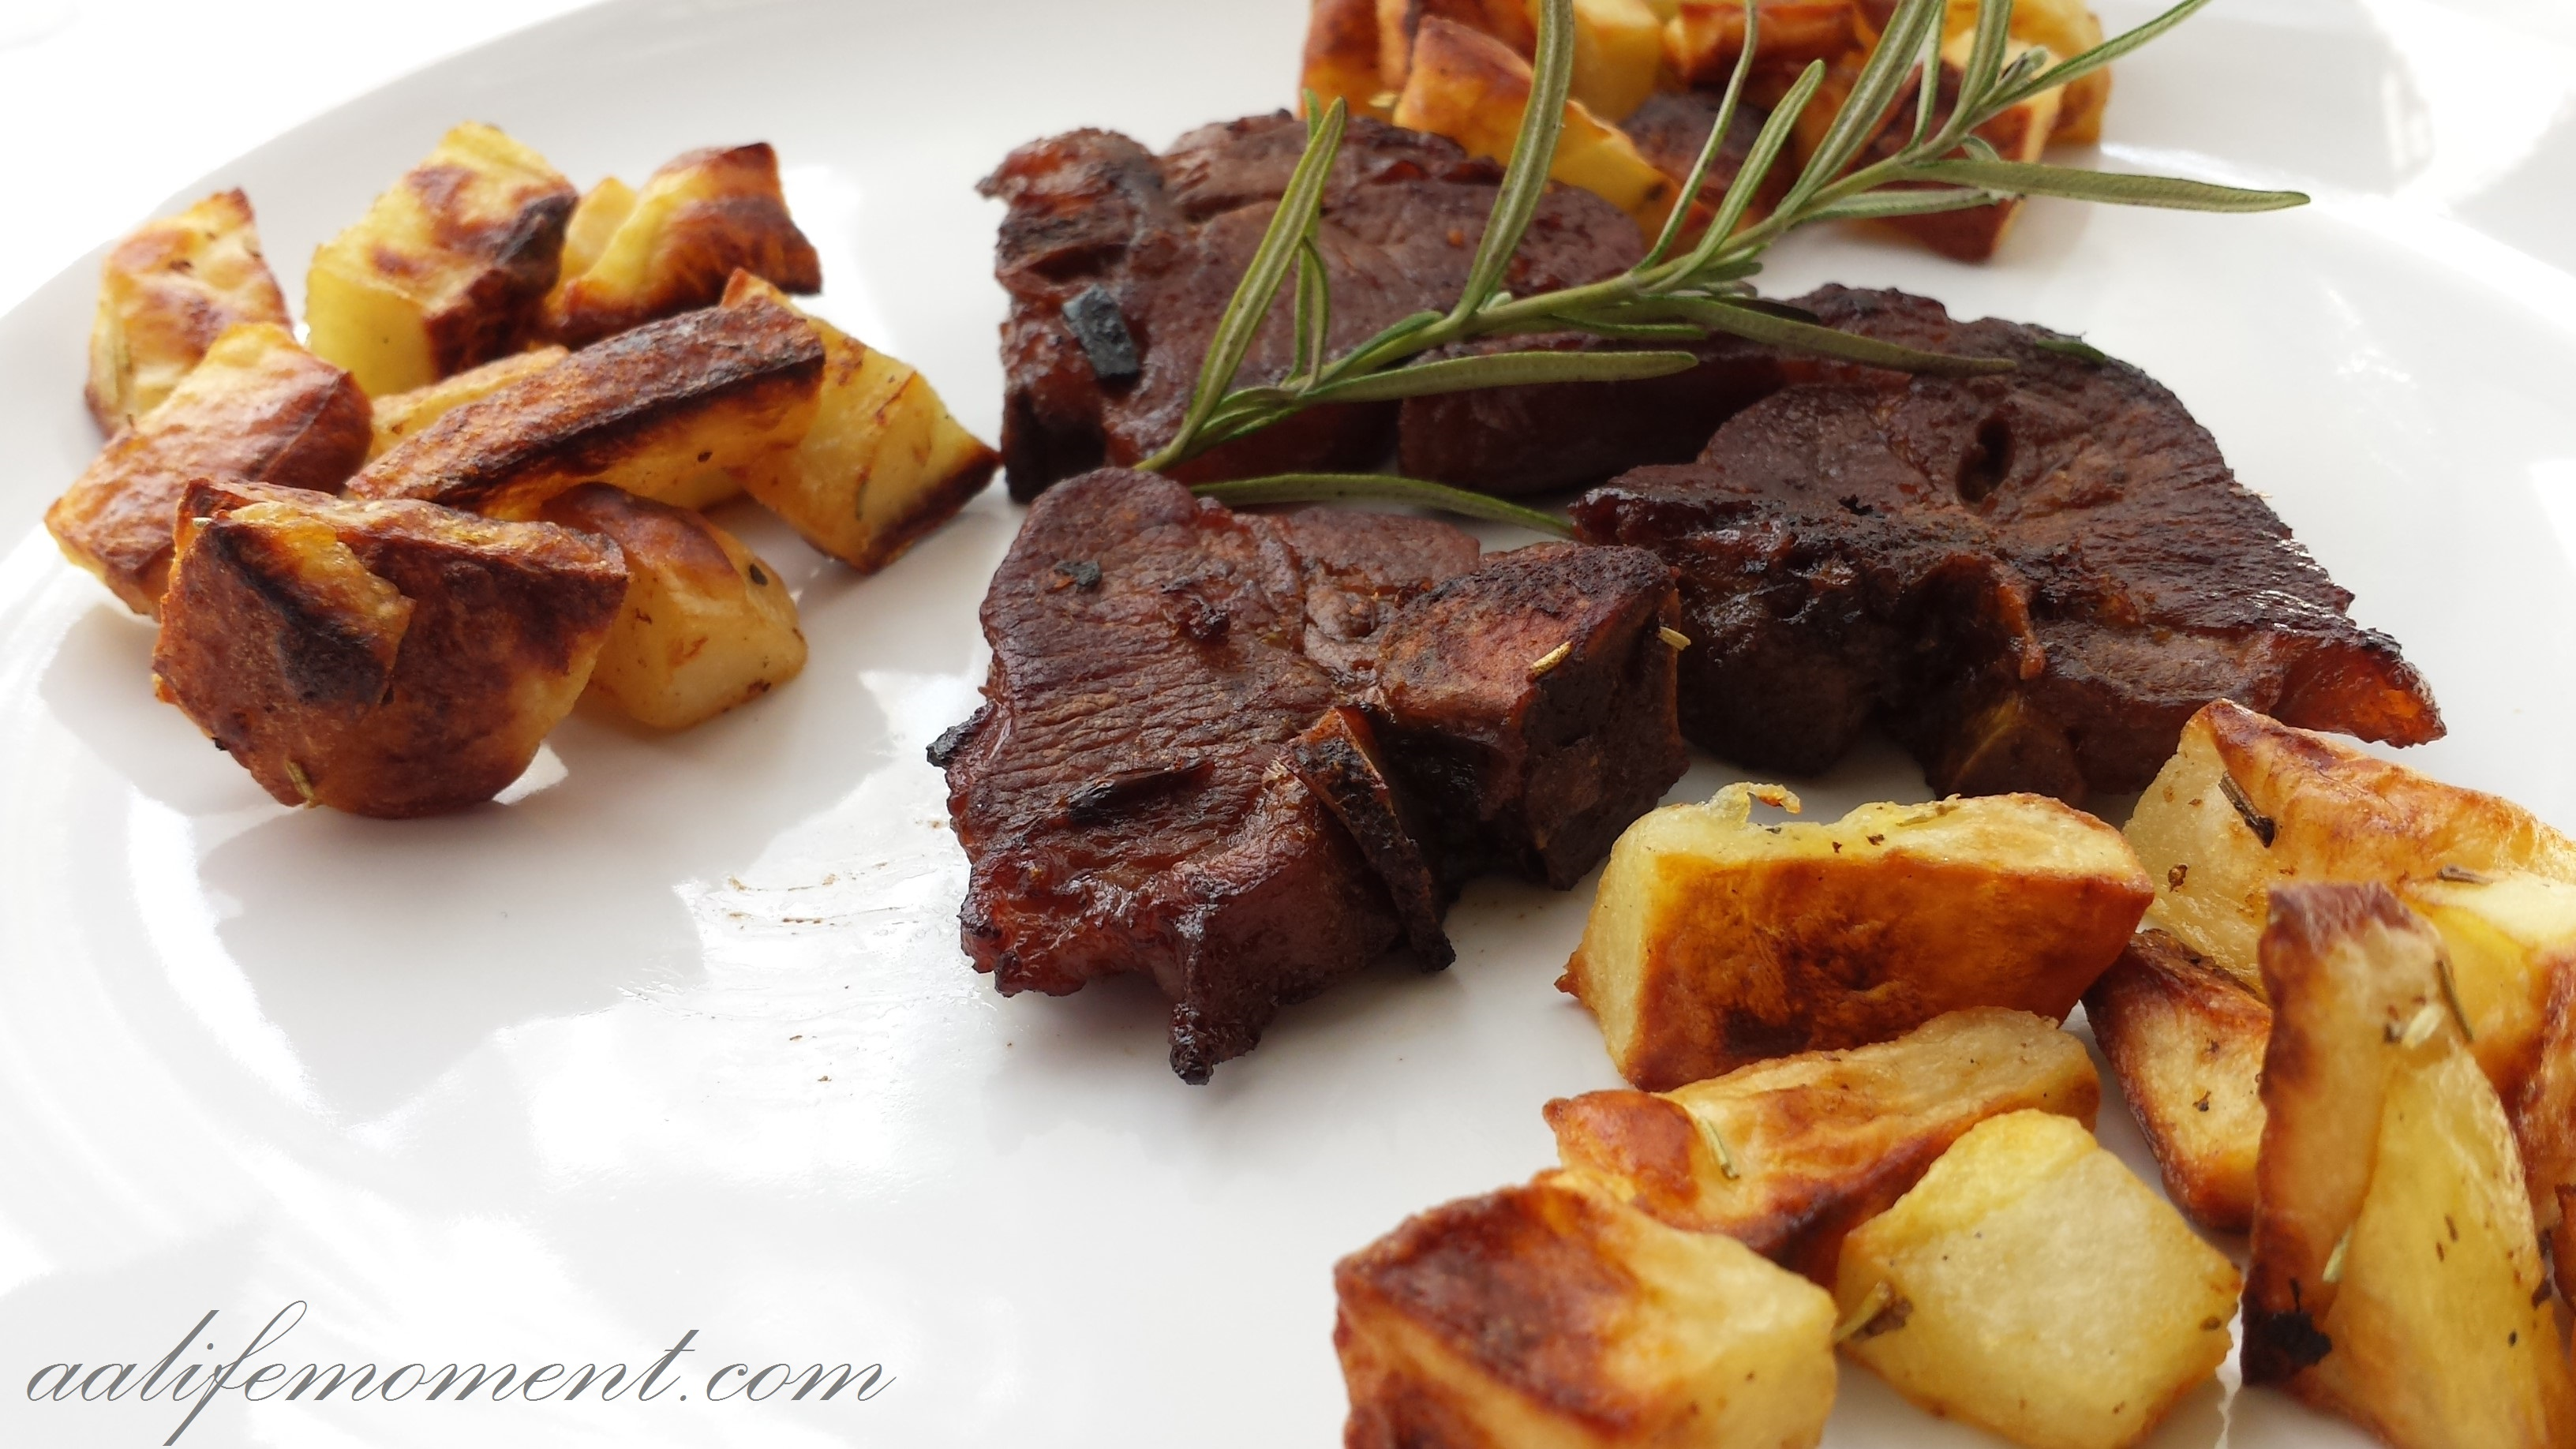 Lamb chops and roasted potatoes